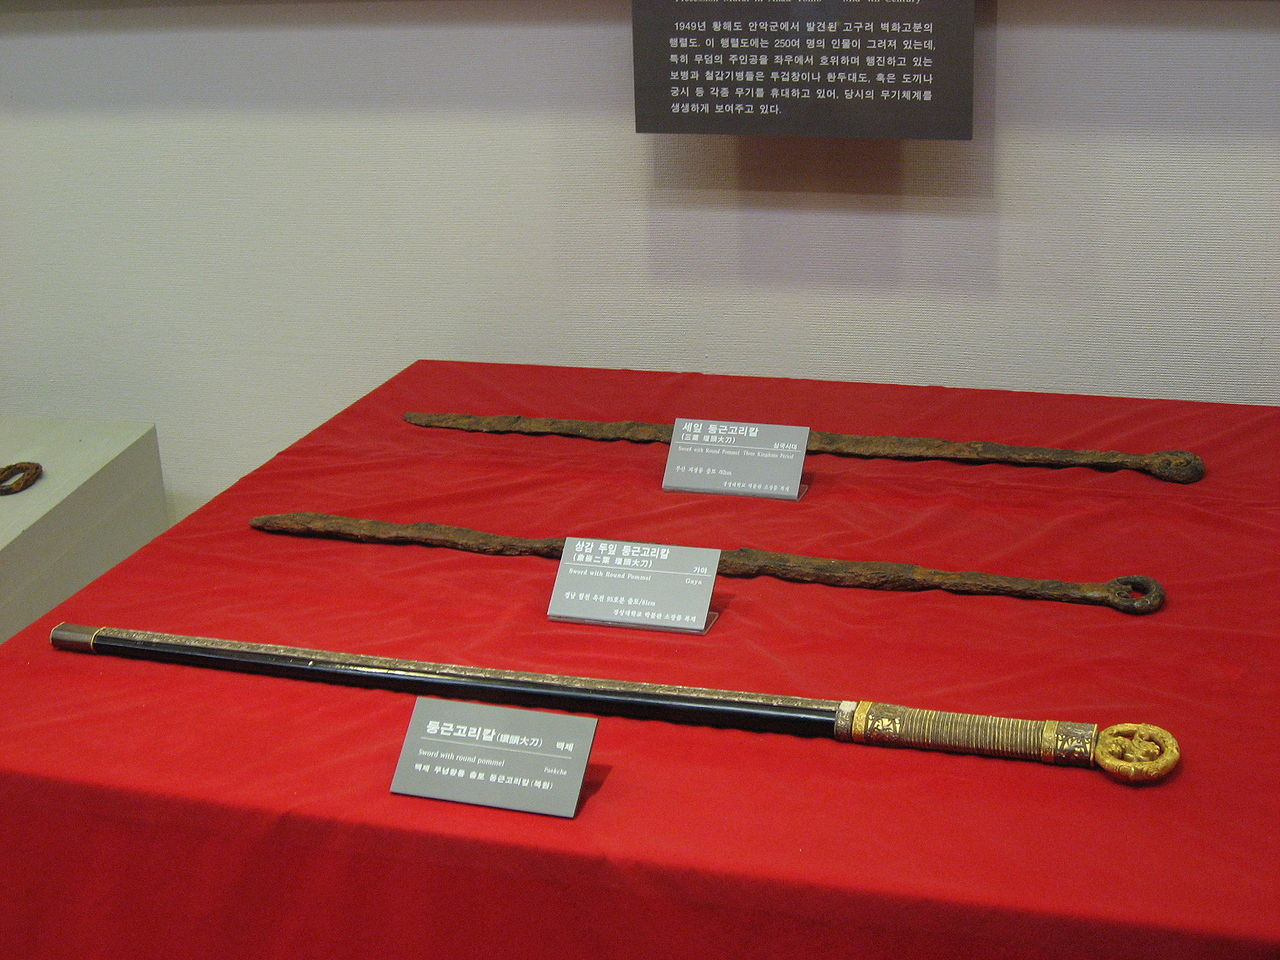 Korean Swords Produced During the Three Kingdoms Period